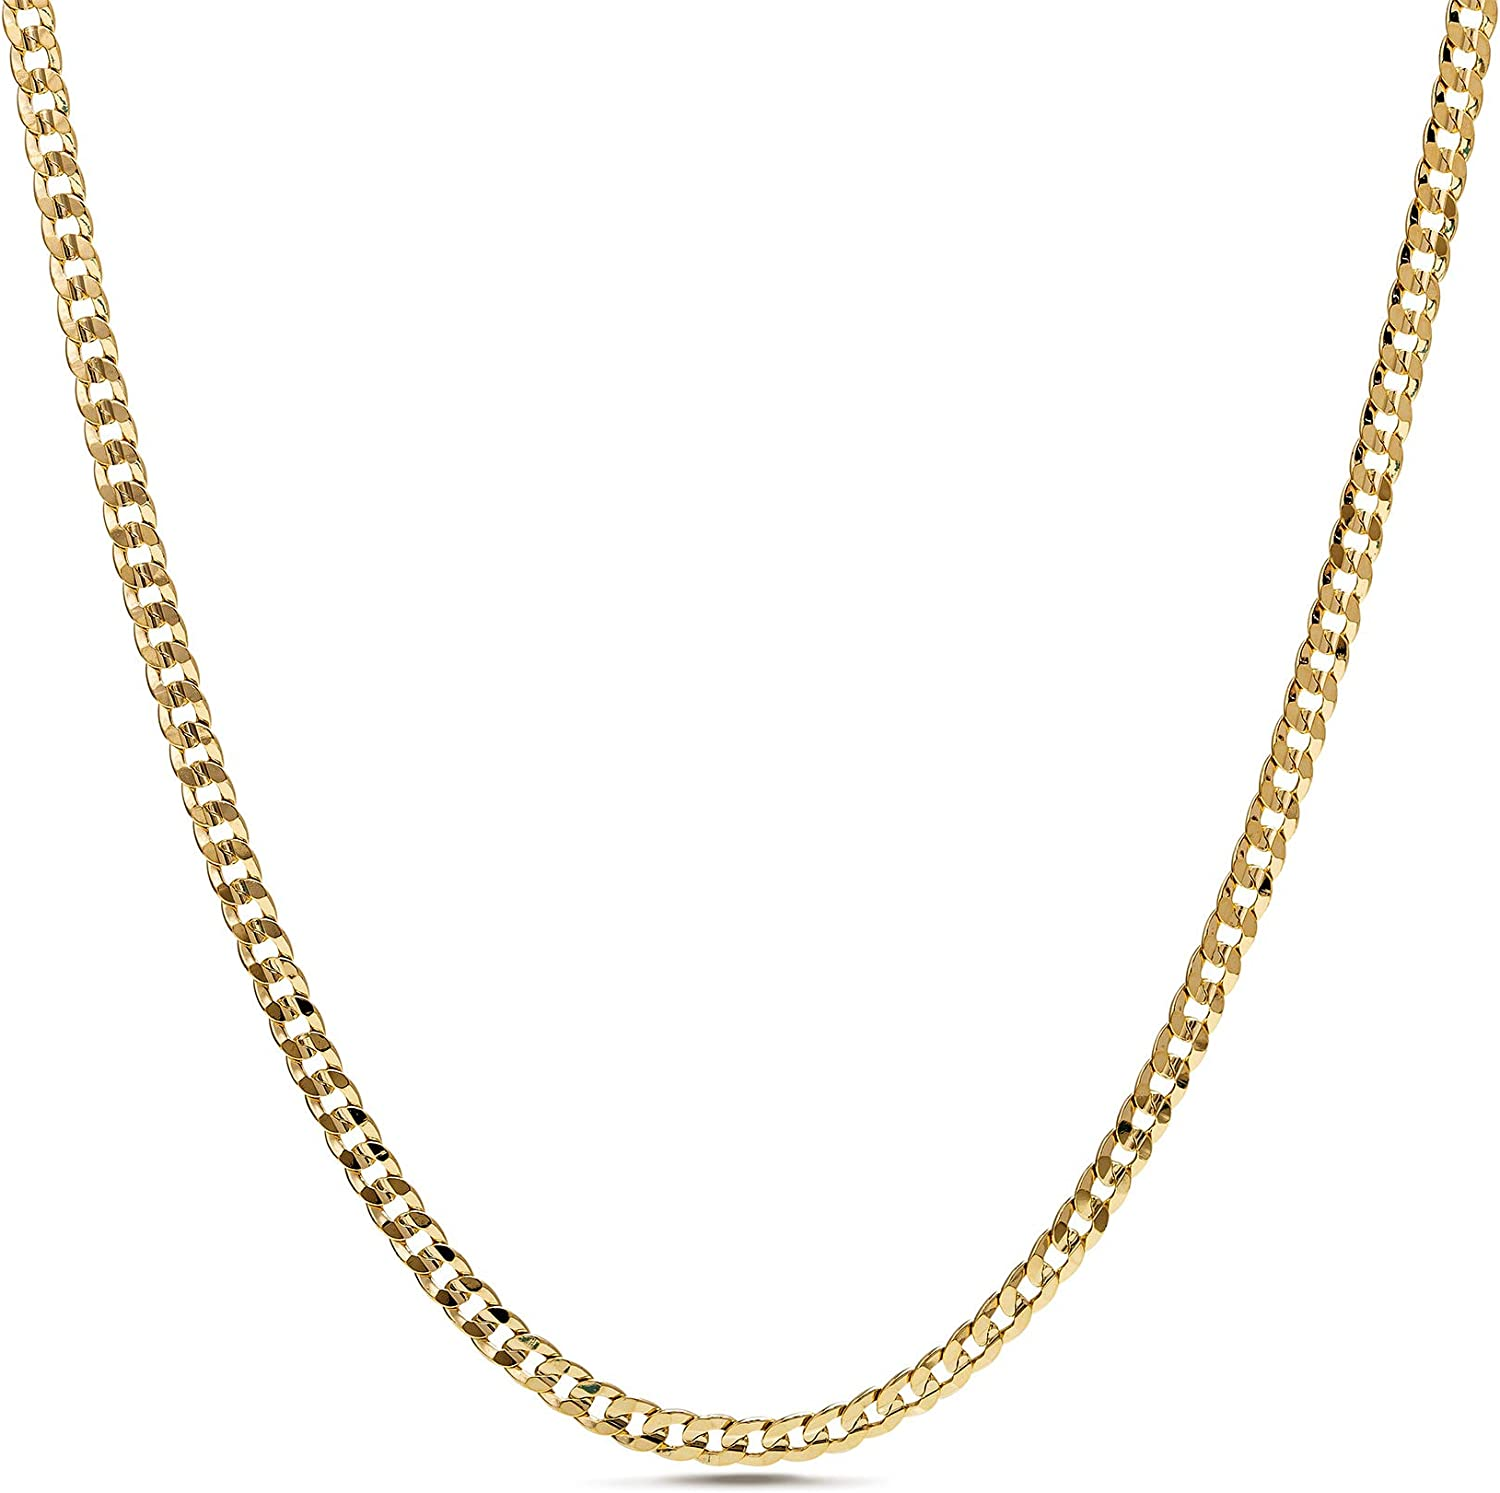 Nautica 1.2mm - 2.3mm Miami Cuban Chain Necklace for Men or Women in Yellow Gold Plated Brass